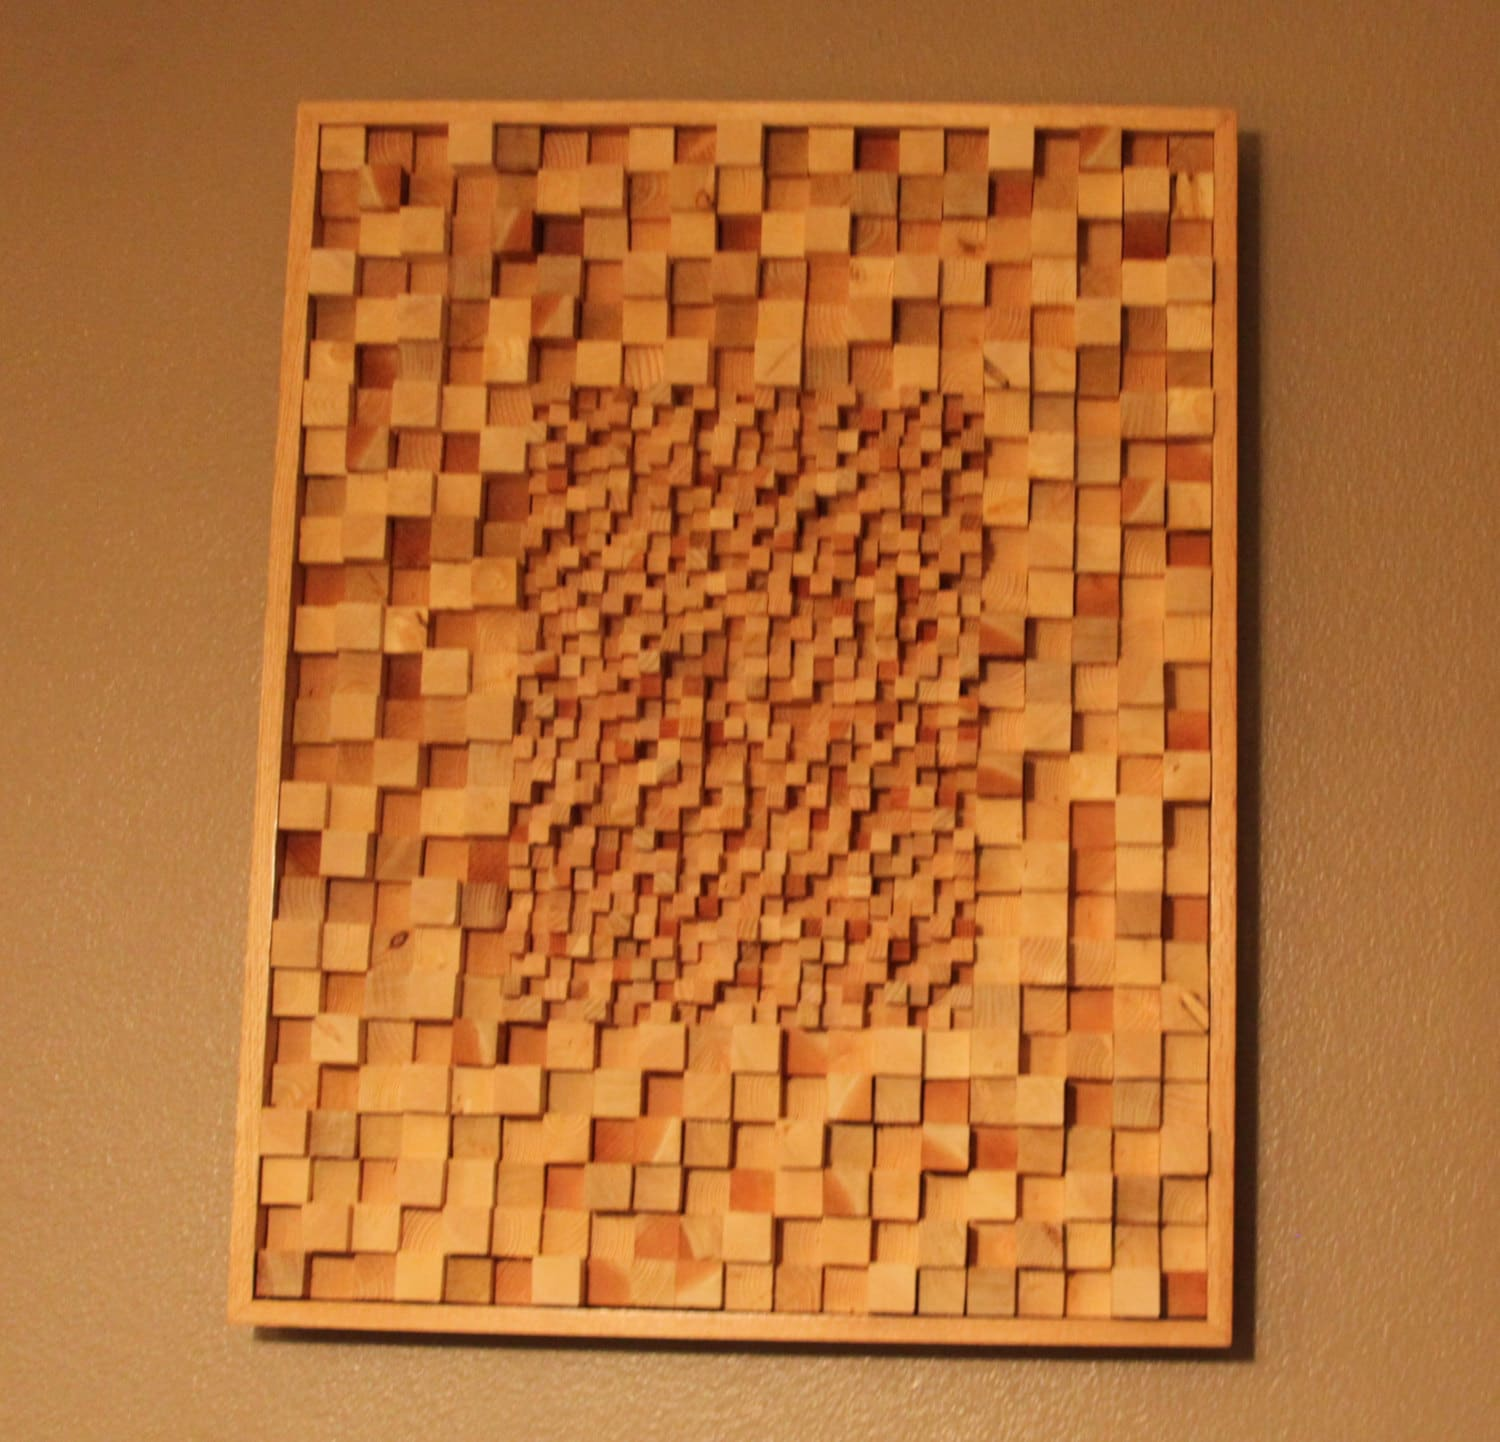 Wood Block Wall The Walking Dead The Talking Dead Inspired Art Sculpture Home